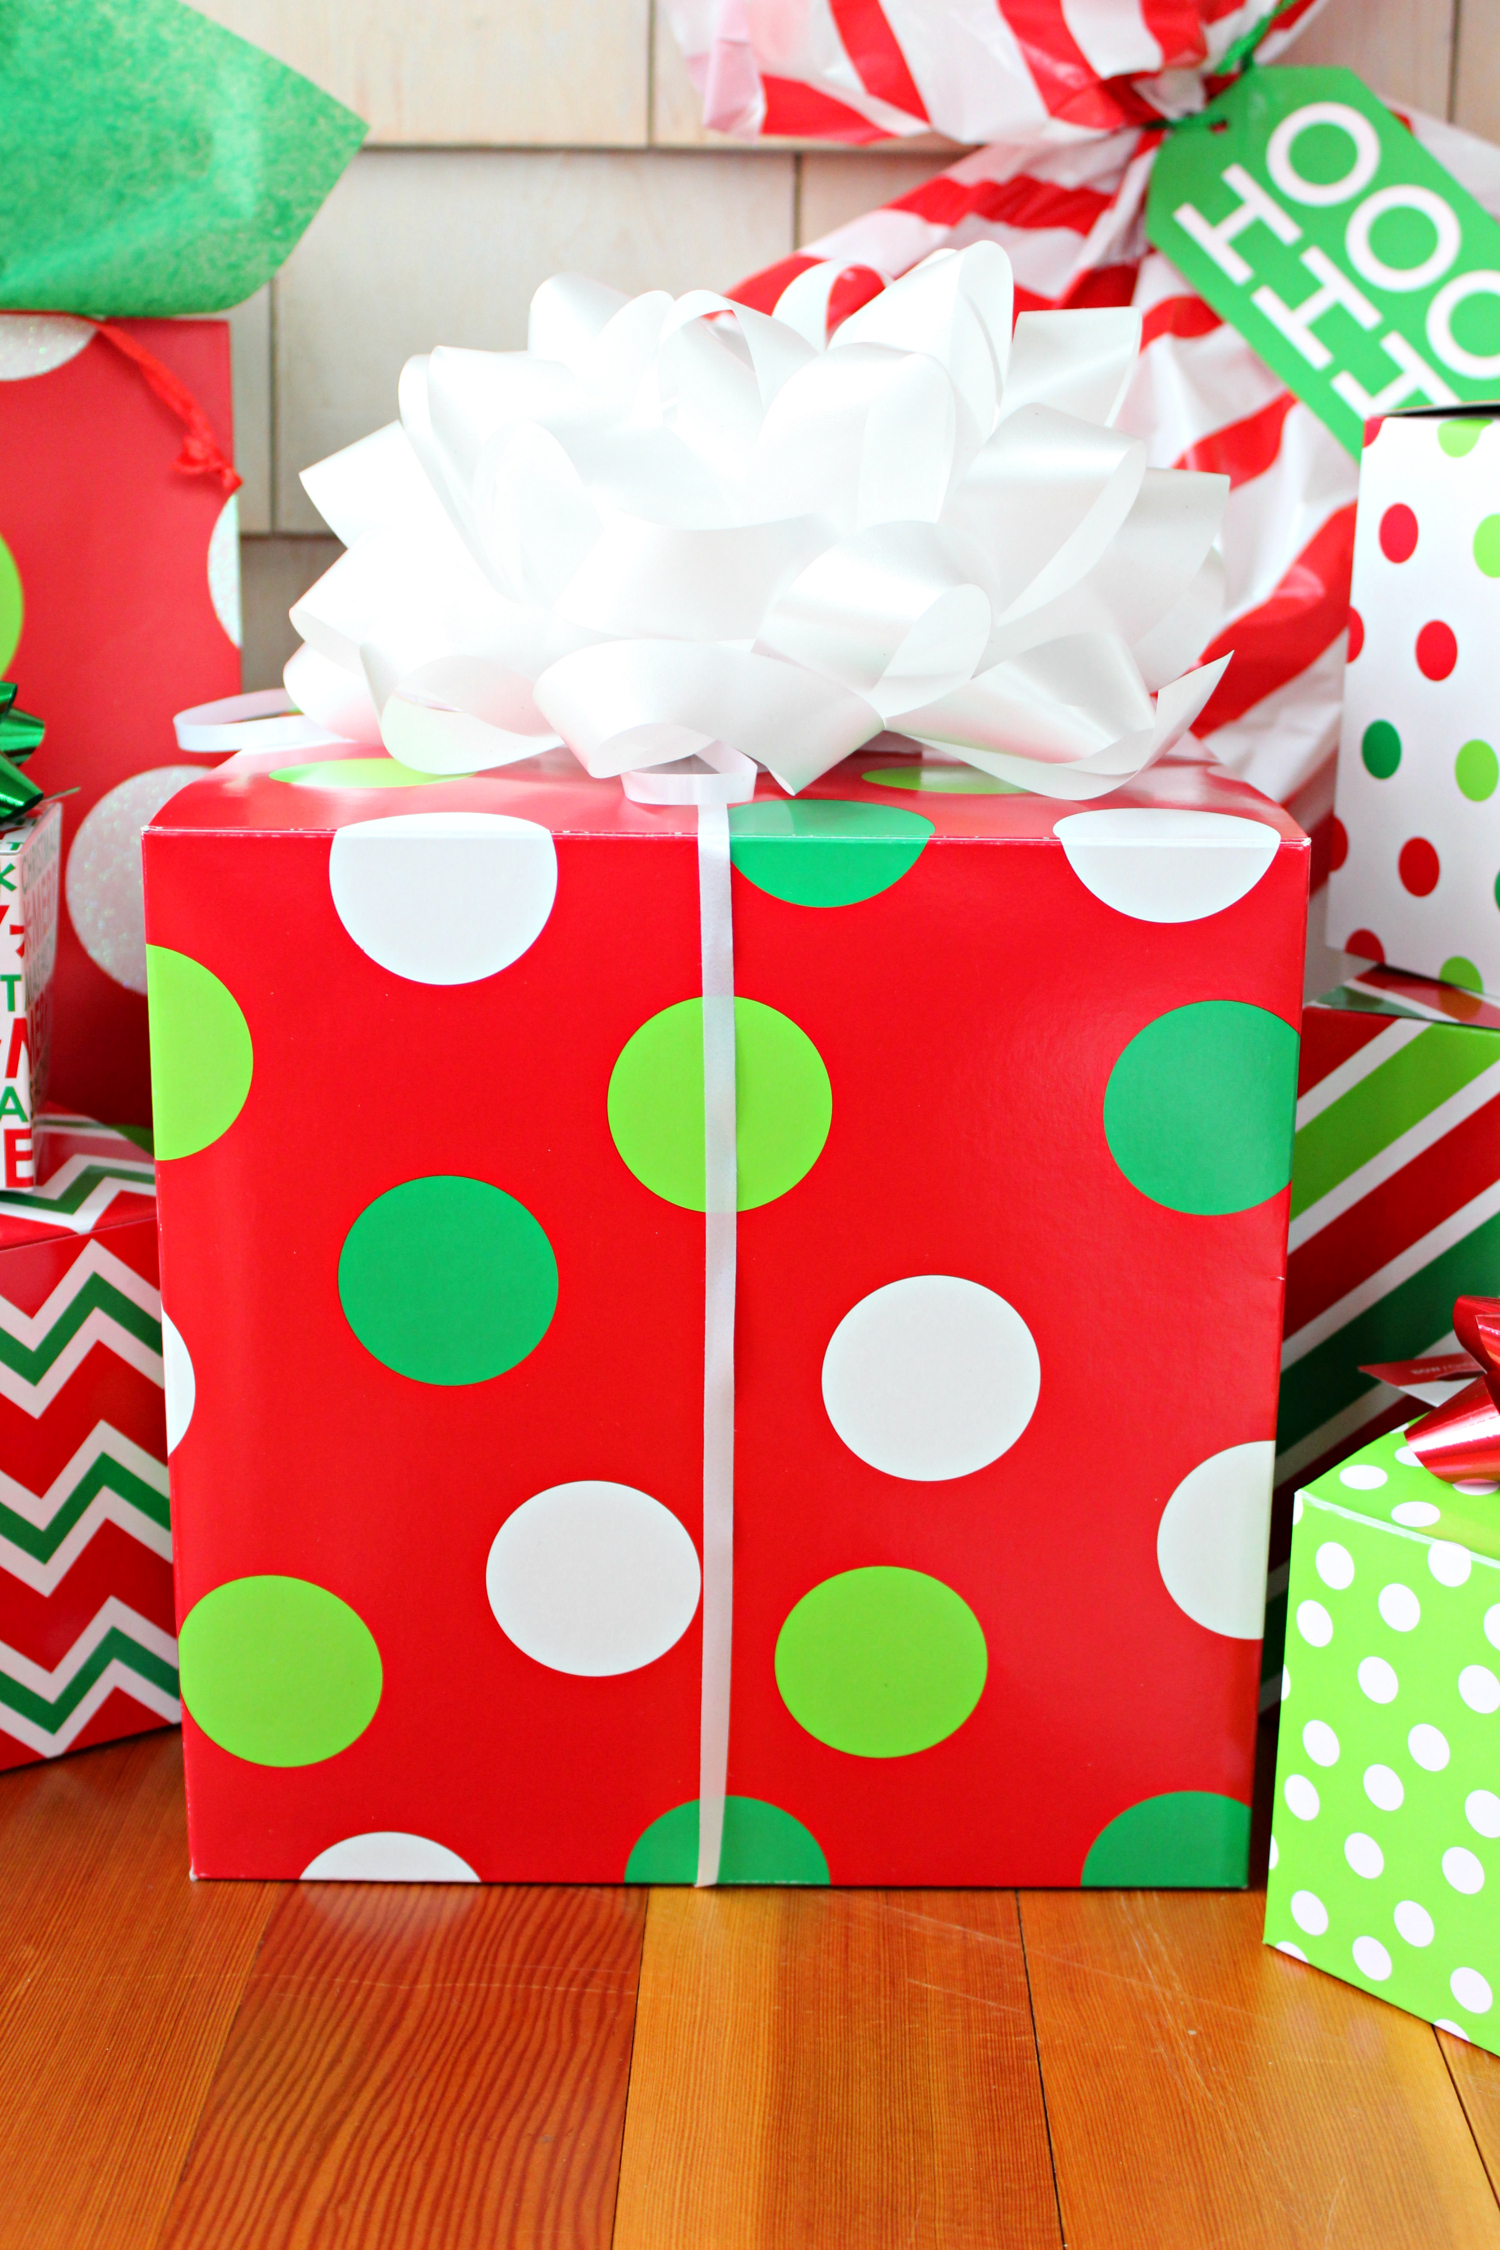 Quick and easy gift wrapping ideas from American Greetings